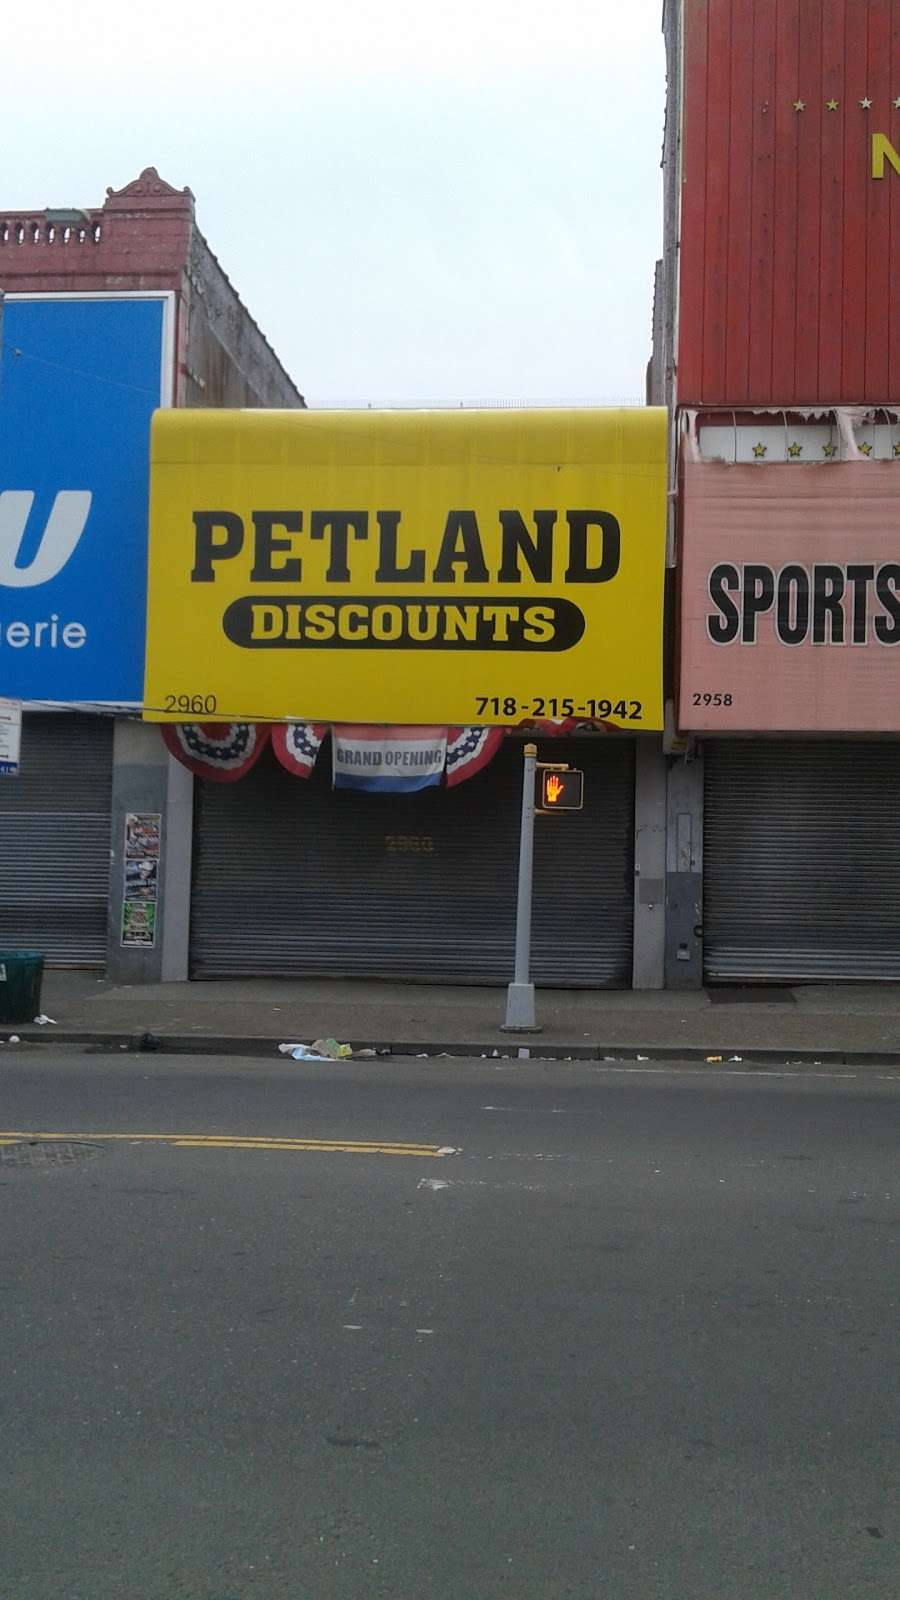 Petland Discounts - THIRD AVENUE - pet store  | Photo 1 of 1 | Address: 2960 Third Ave, Bronx, NY 10455, USA | Phone: (718) 215-1942